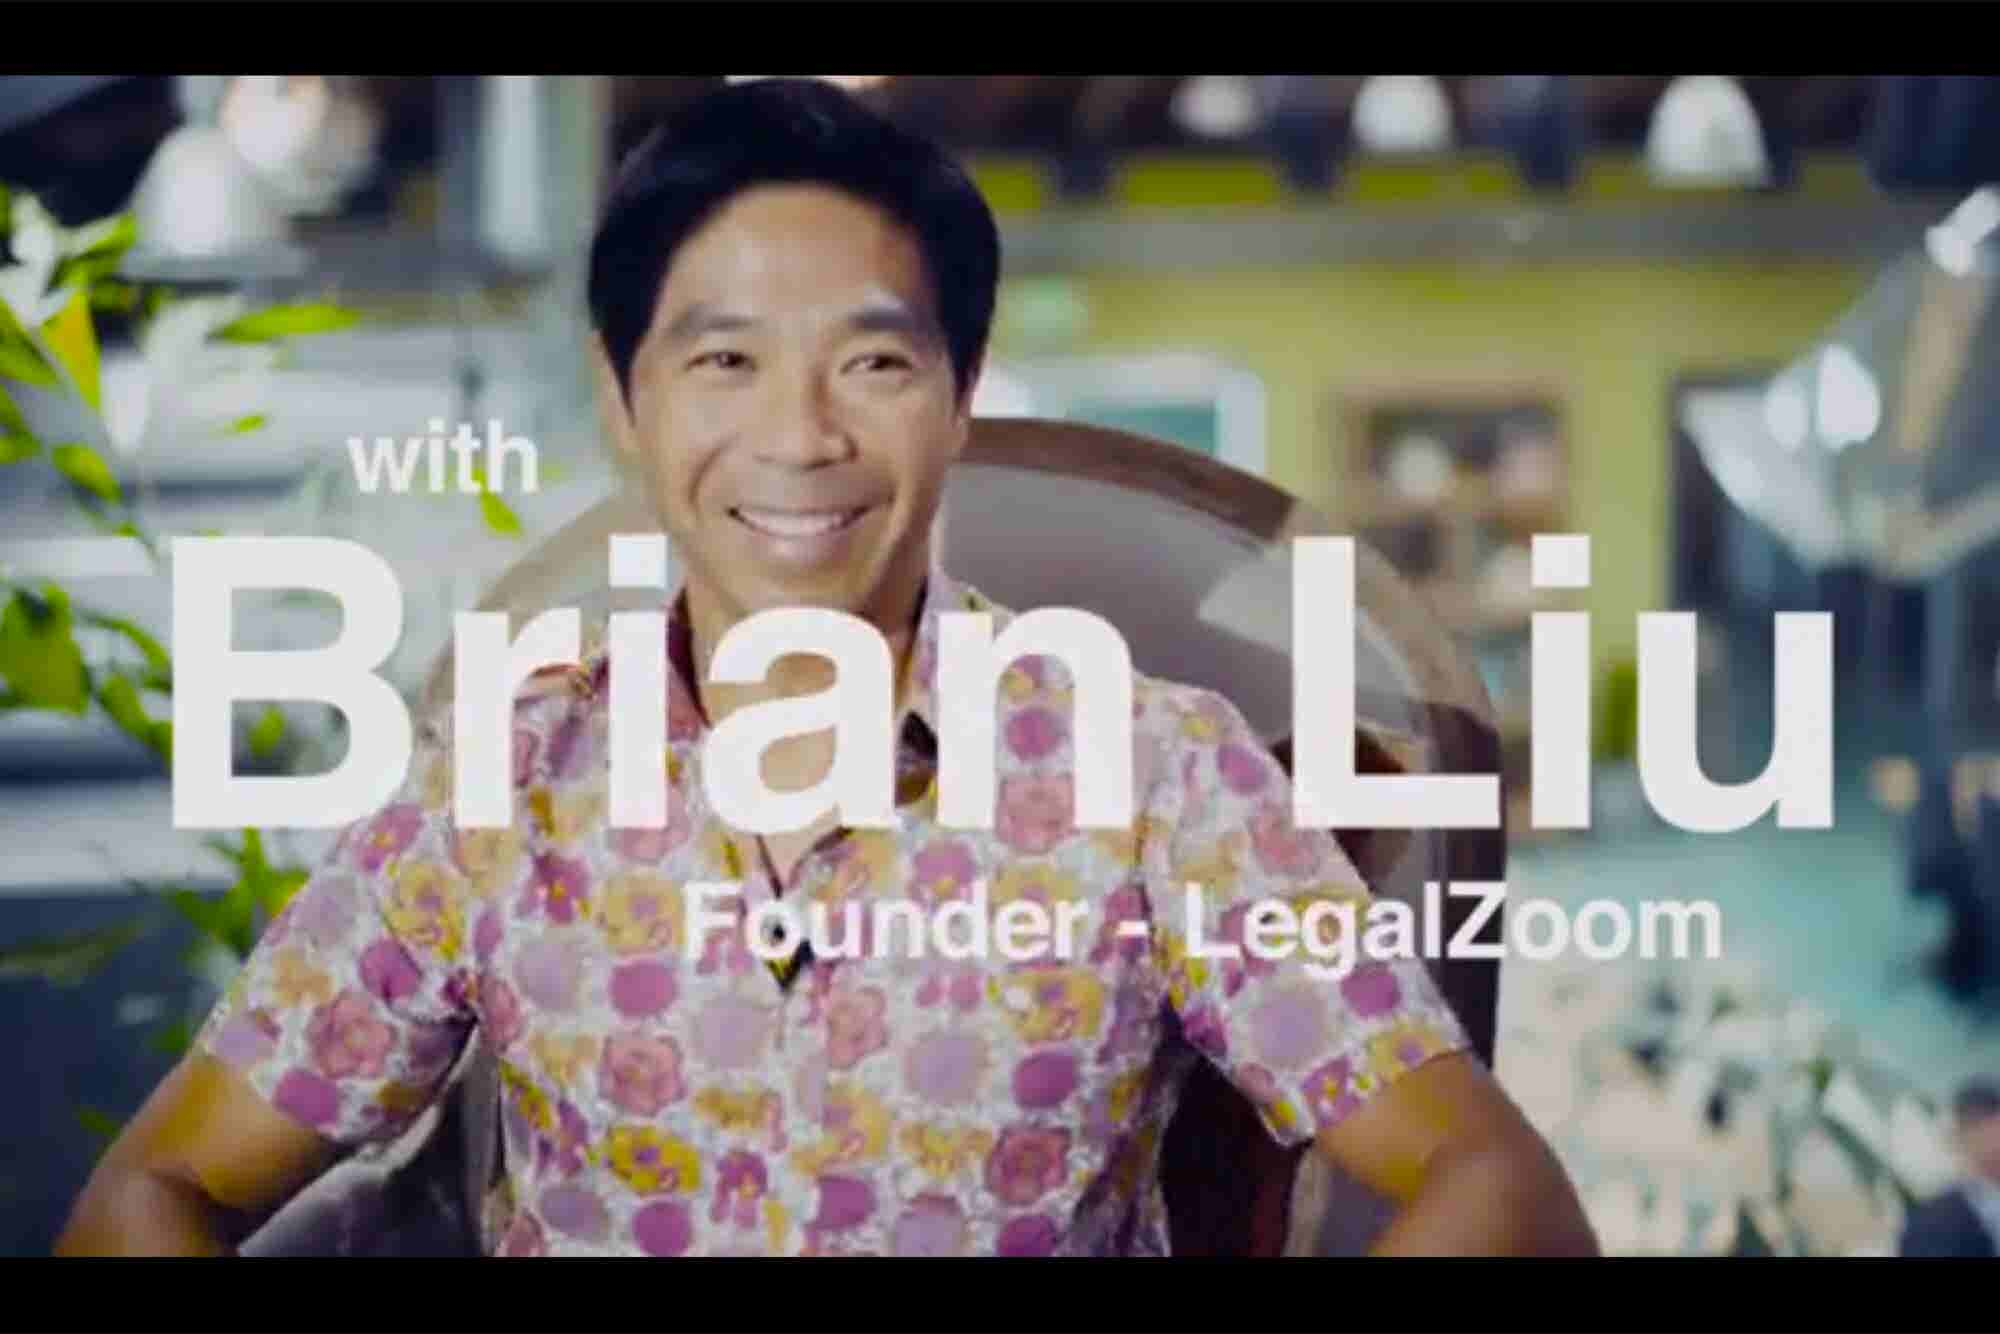 When a Fortune Teller Told Brian Liu He Would Become a Businessman, He Laughed. Years Later, He Started LegalZoom.